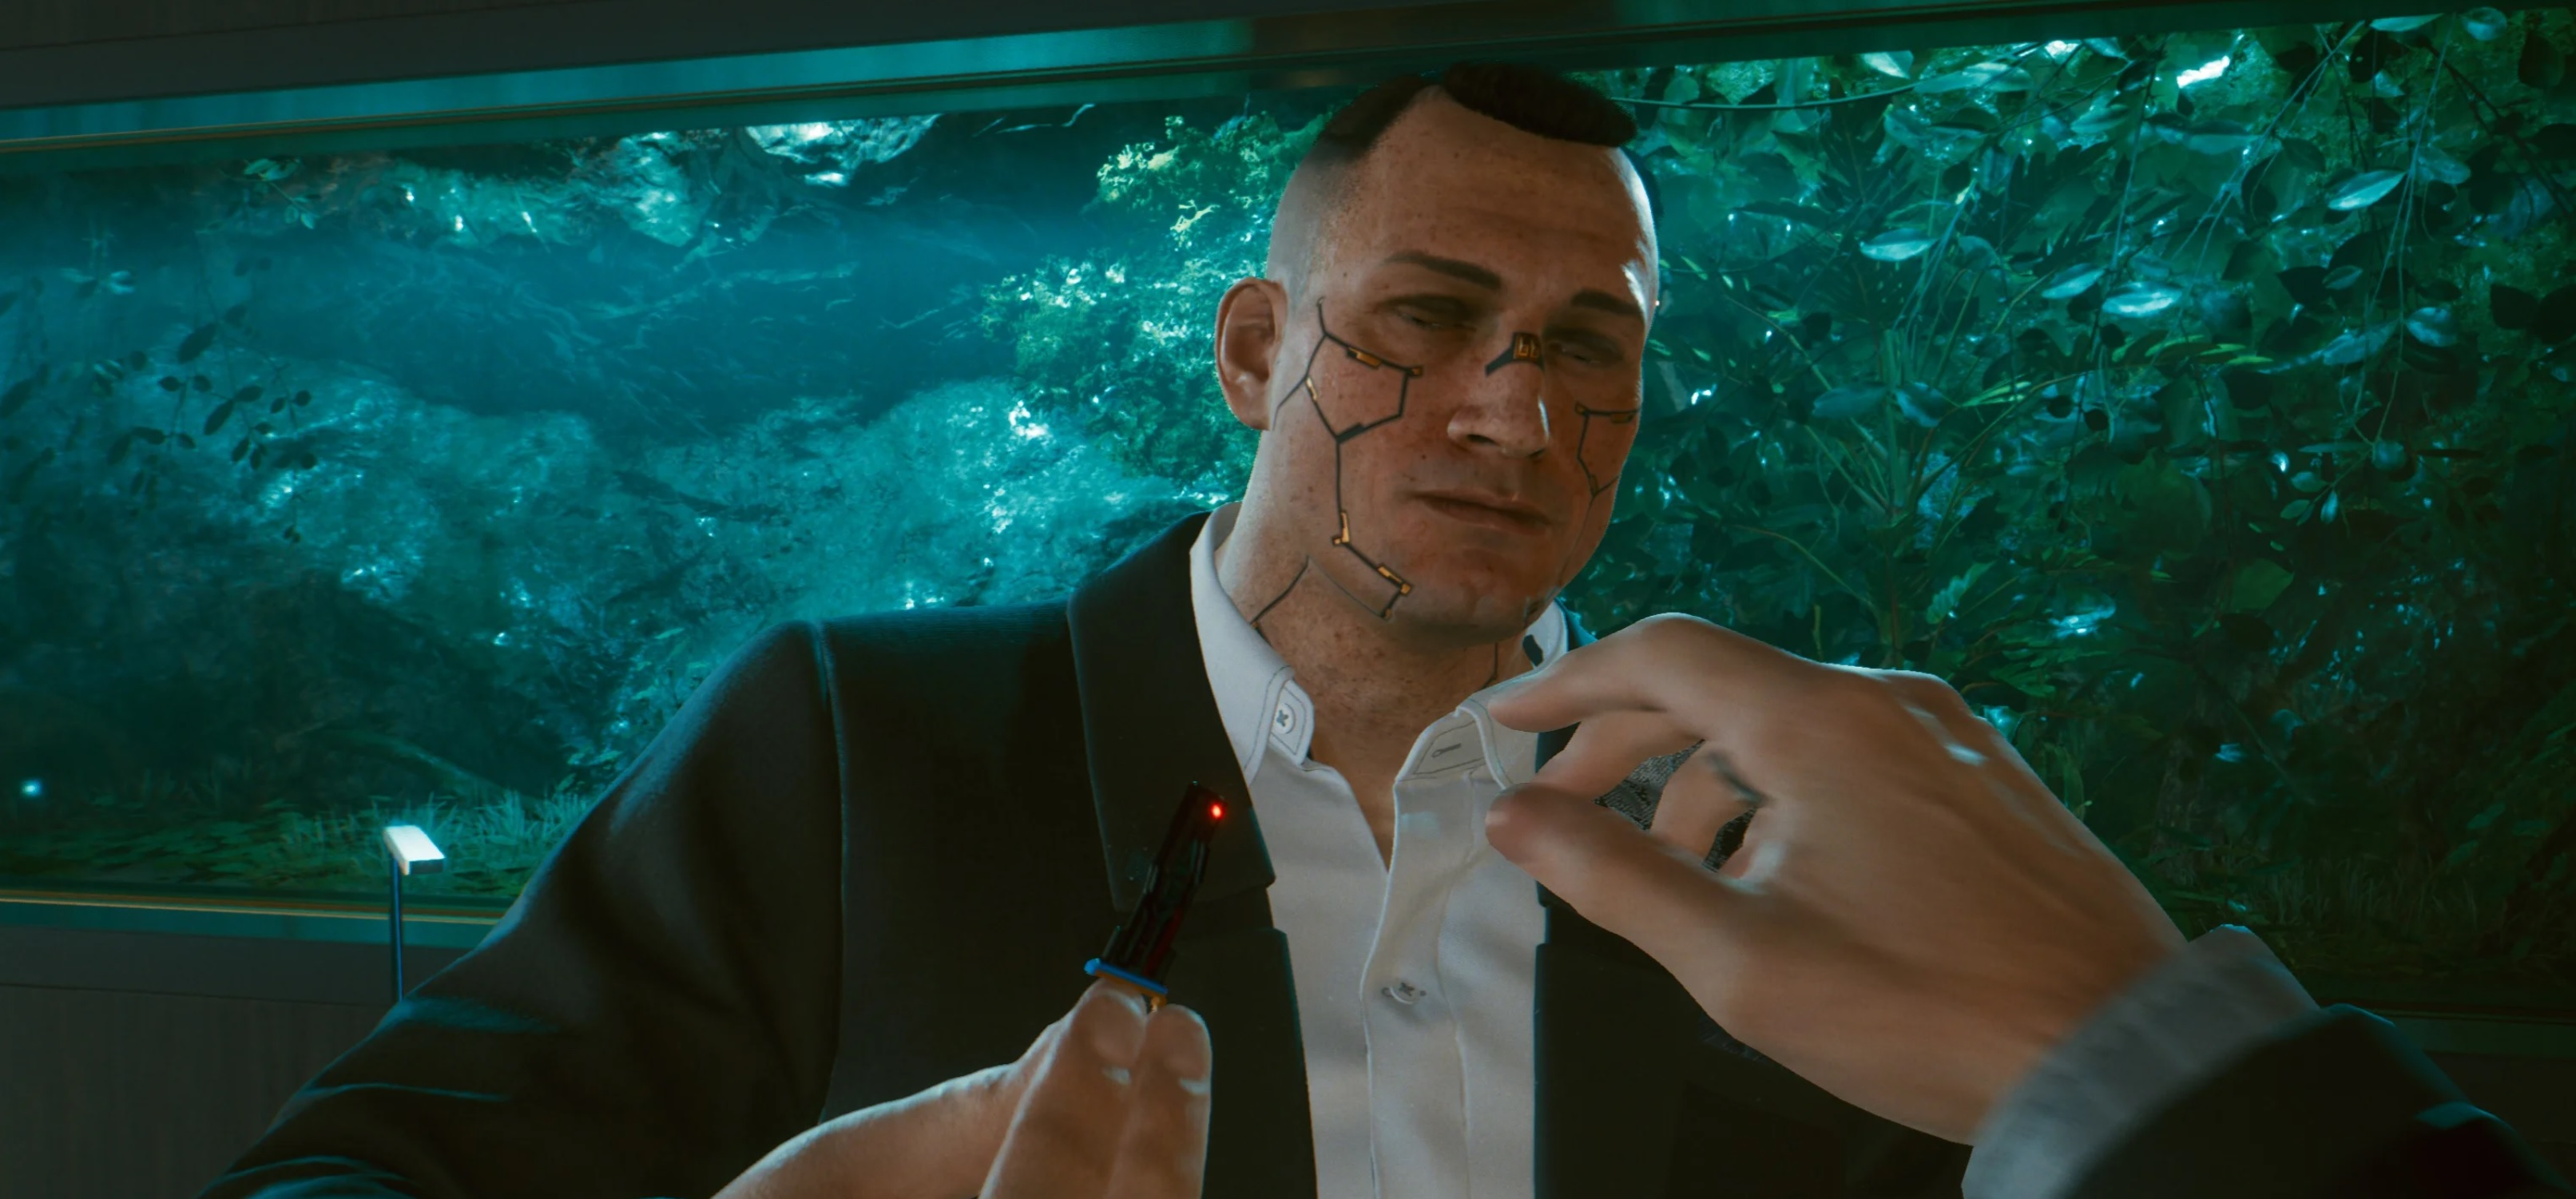 Holy Elder Scrolls bug: Cyberpunk 2077 saves over 8MB are getting corrupted screenshot